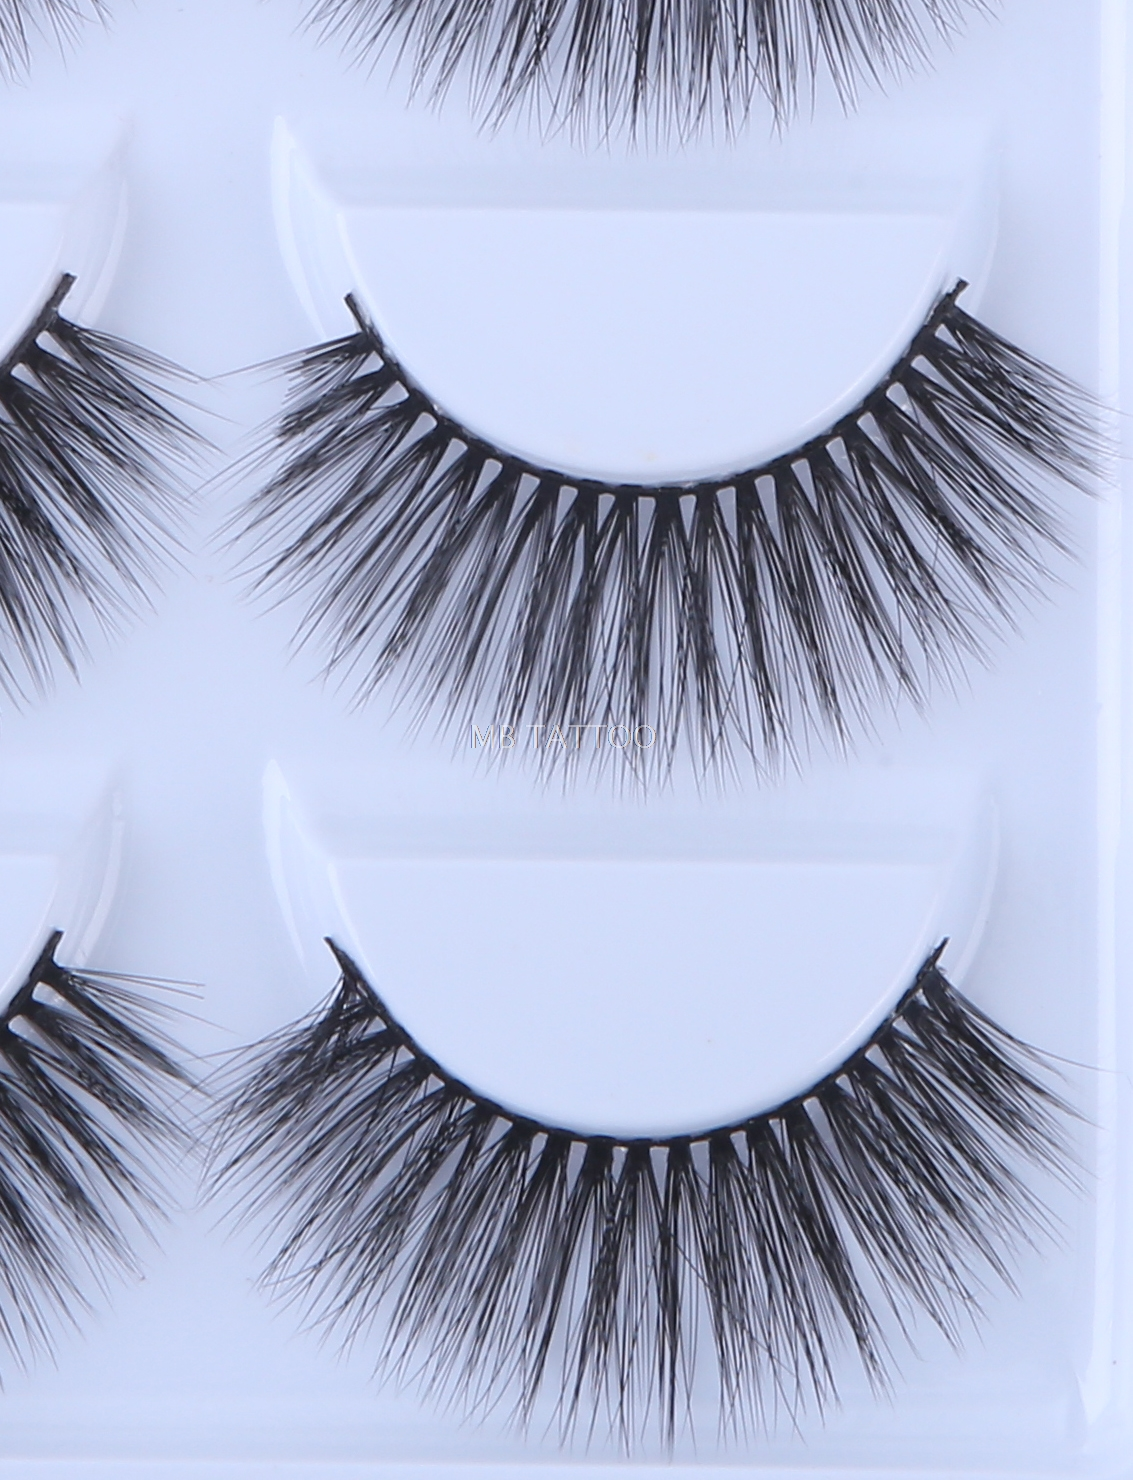 HTB11VwUQ3HqK1RjSZFEq6AGMXXau New 3D 5 Pairs Mink Eyelashes extension make up natural Long false eyelashes fake eye Lashes mink Makeup wholesale Lashes